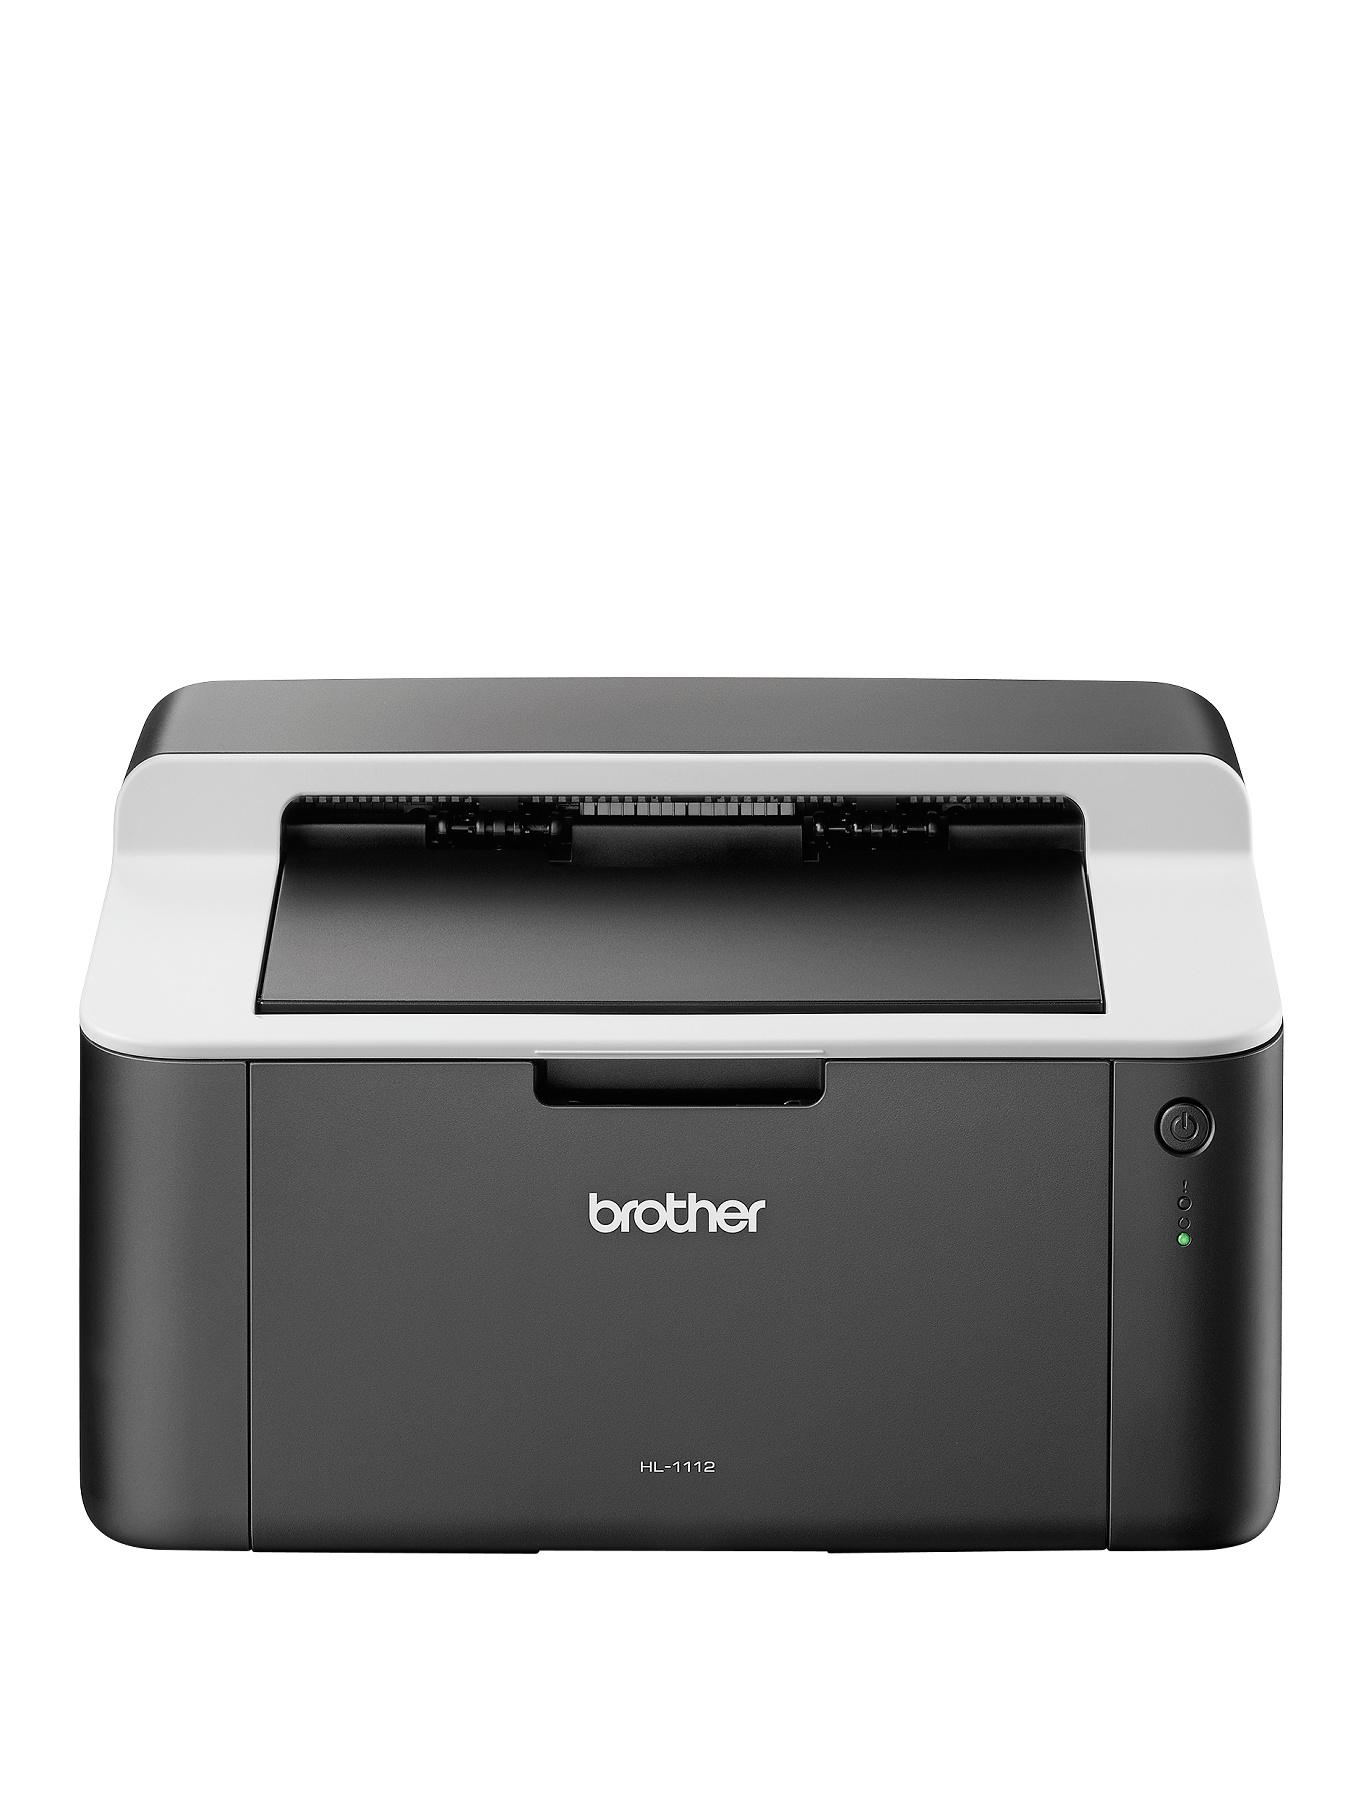 Brother HL-1112 A4 Mono USB Laser Printer 20PPM 1 Tray - Black White